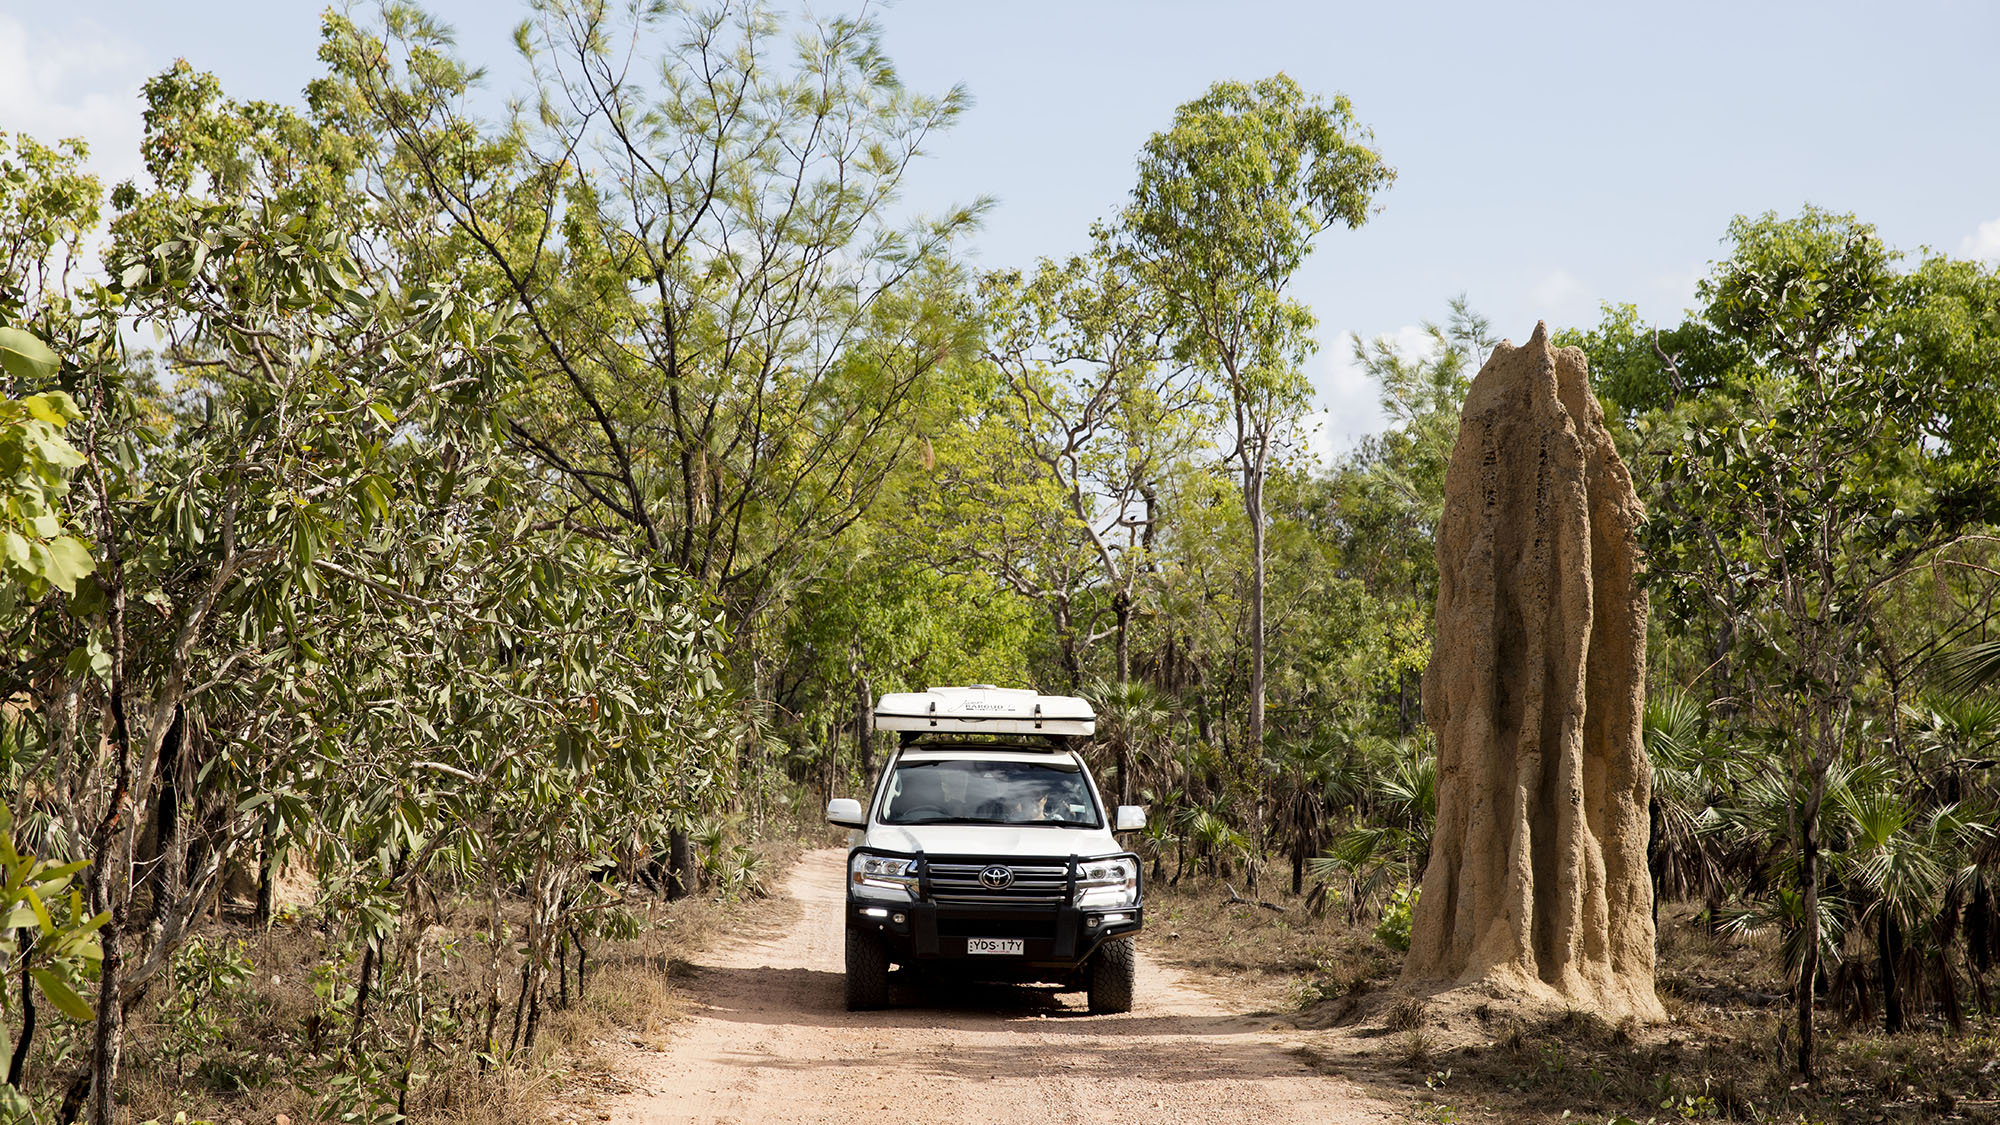 Darwin, Kakadu & Litchfield Adventure for 2 people